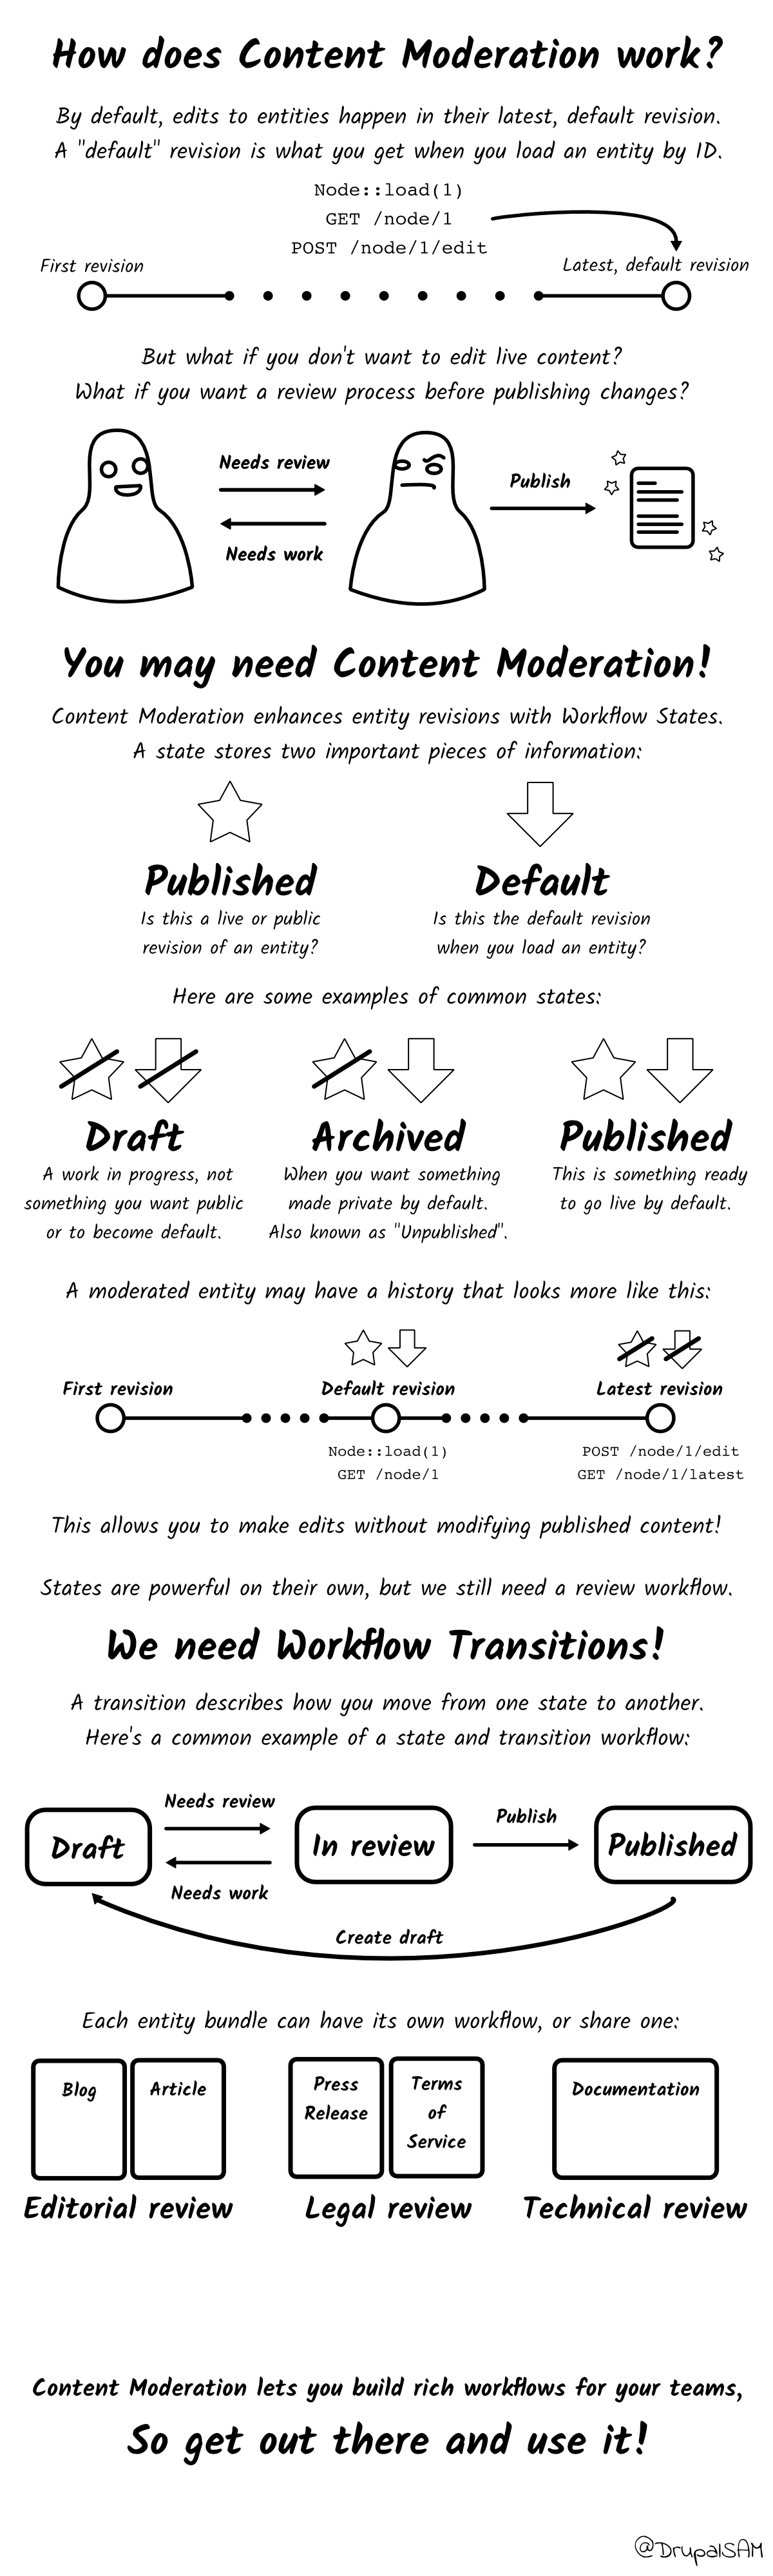 Illustration showing a common editorial workflow using Workflows and Content Moderation. Explained in more detail below.